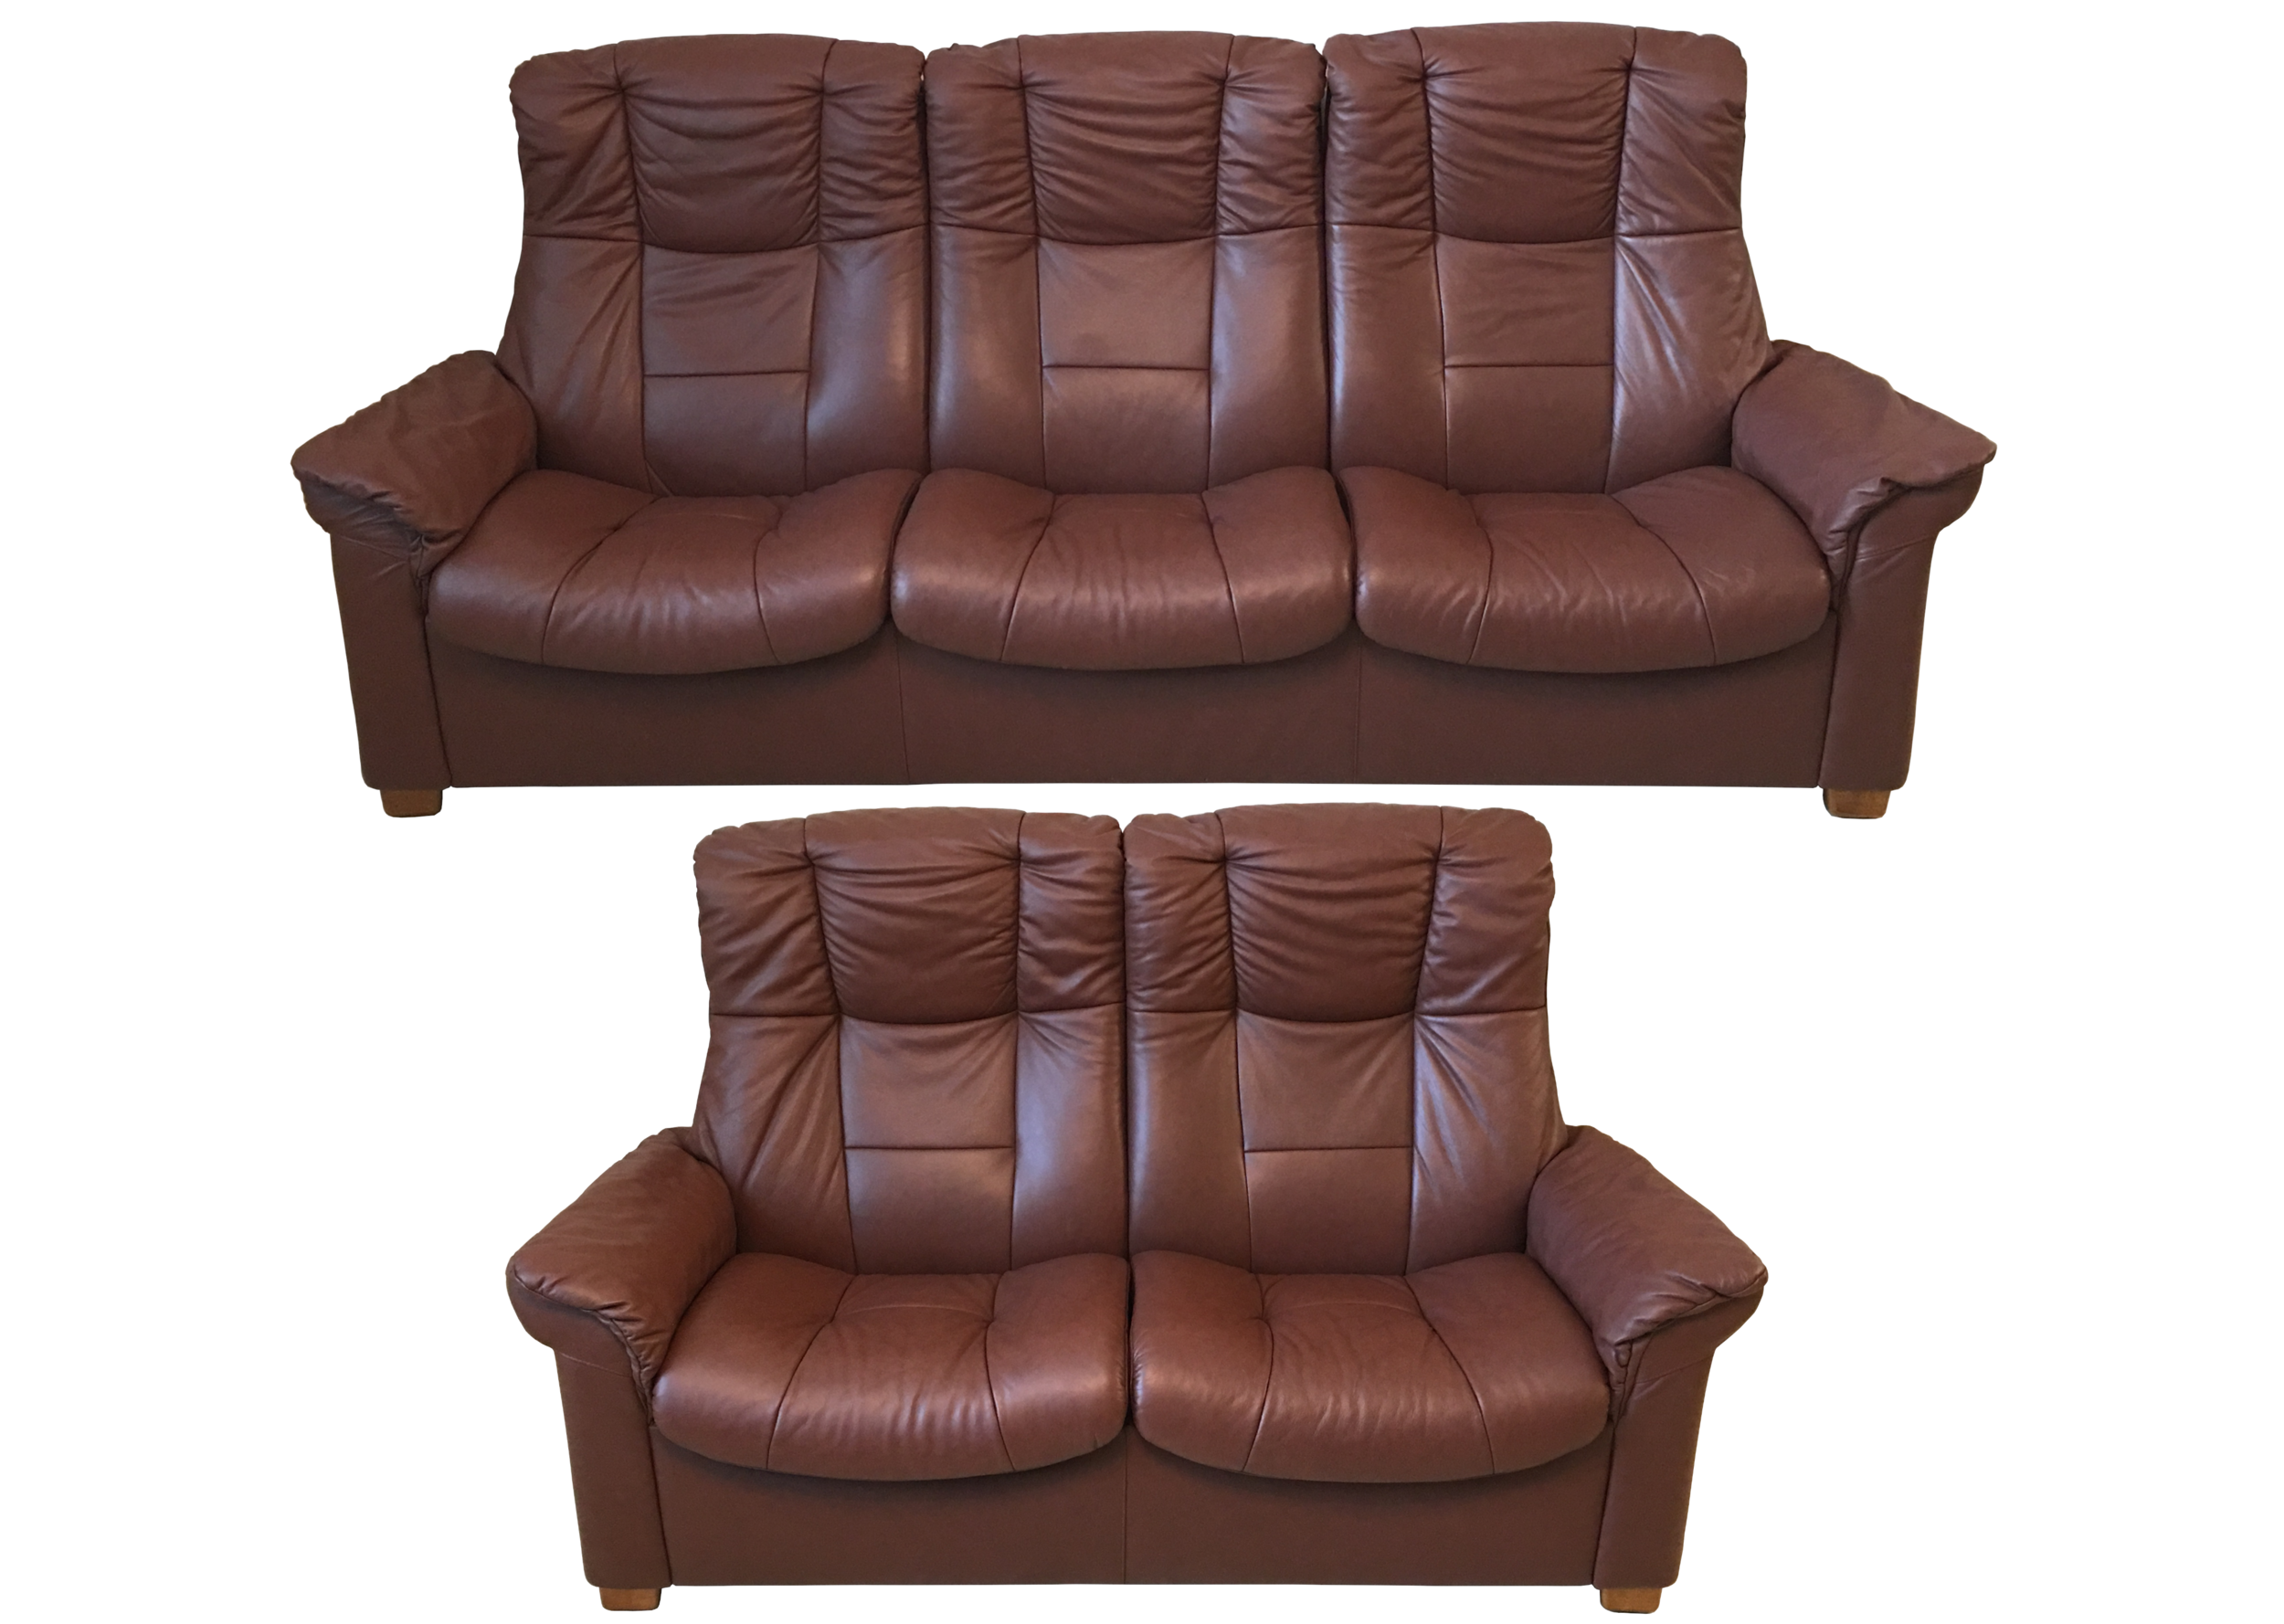 - Ekornes Stressless 'Eldorado' Leather Recliner Sofa Set High Back